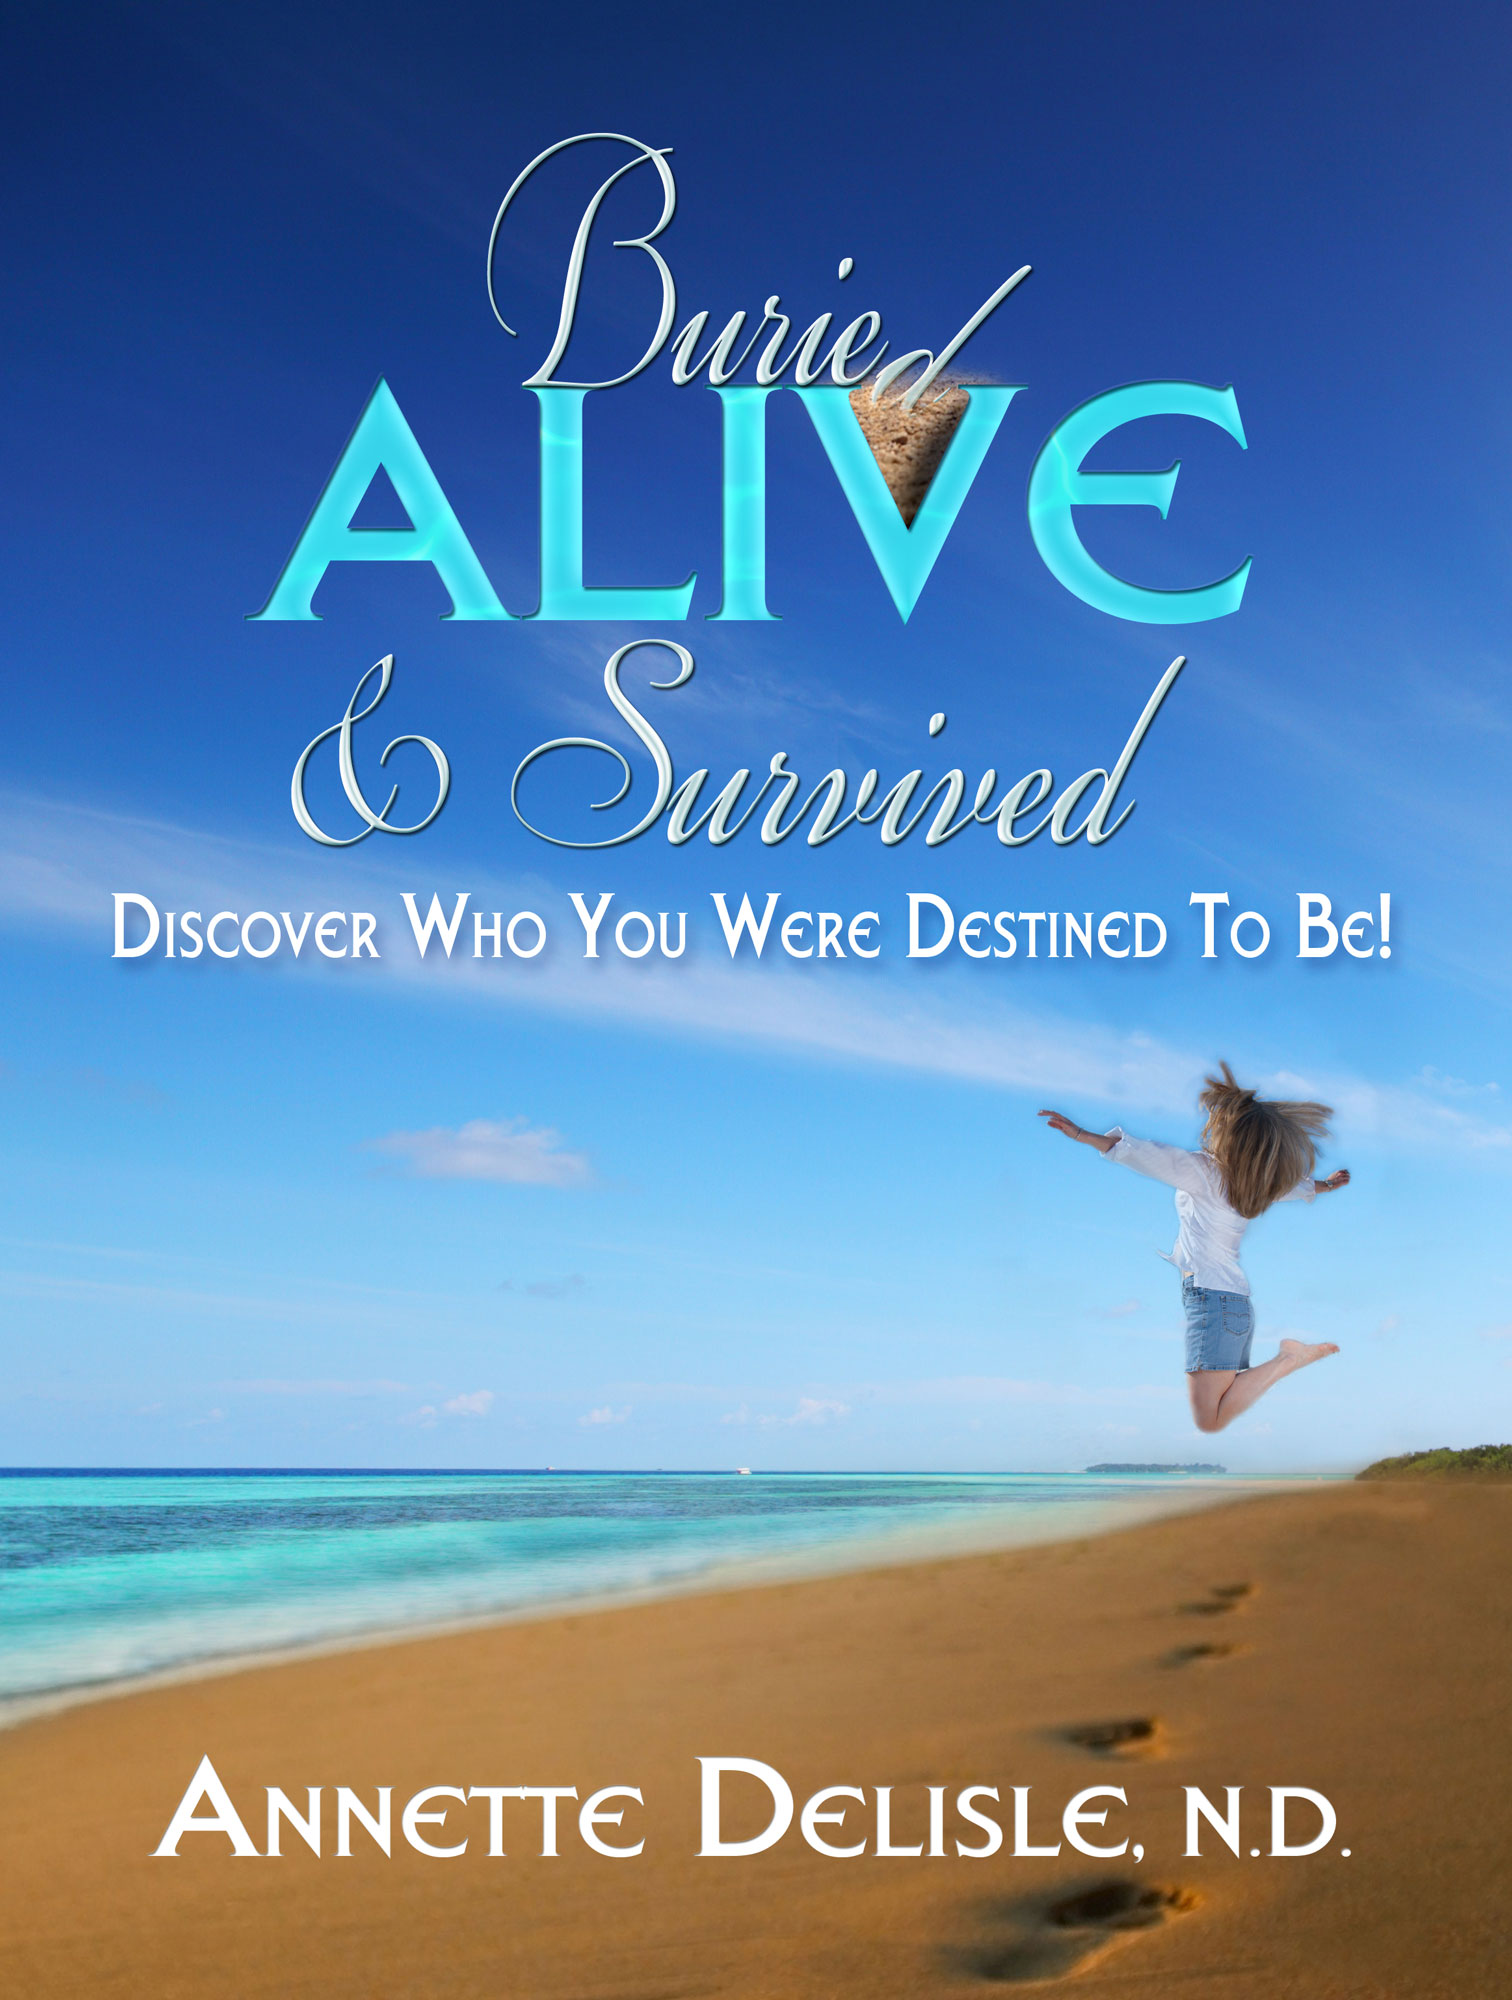 Buried Alive & Survived - Discover Who You Were Destined To Be